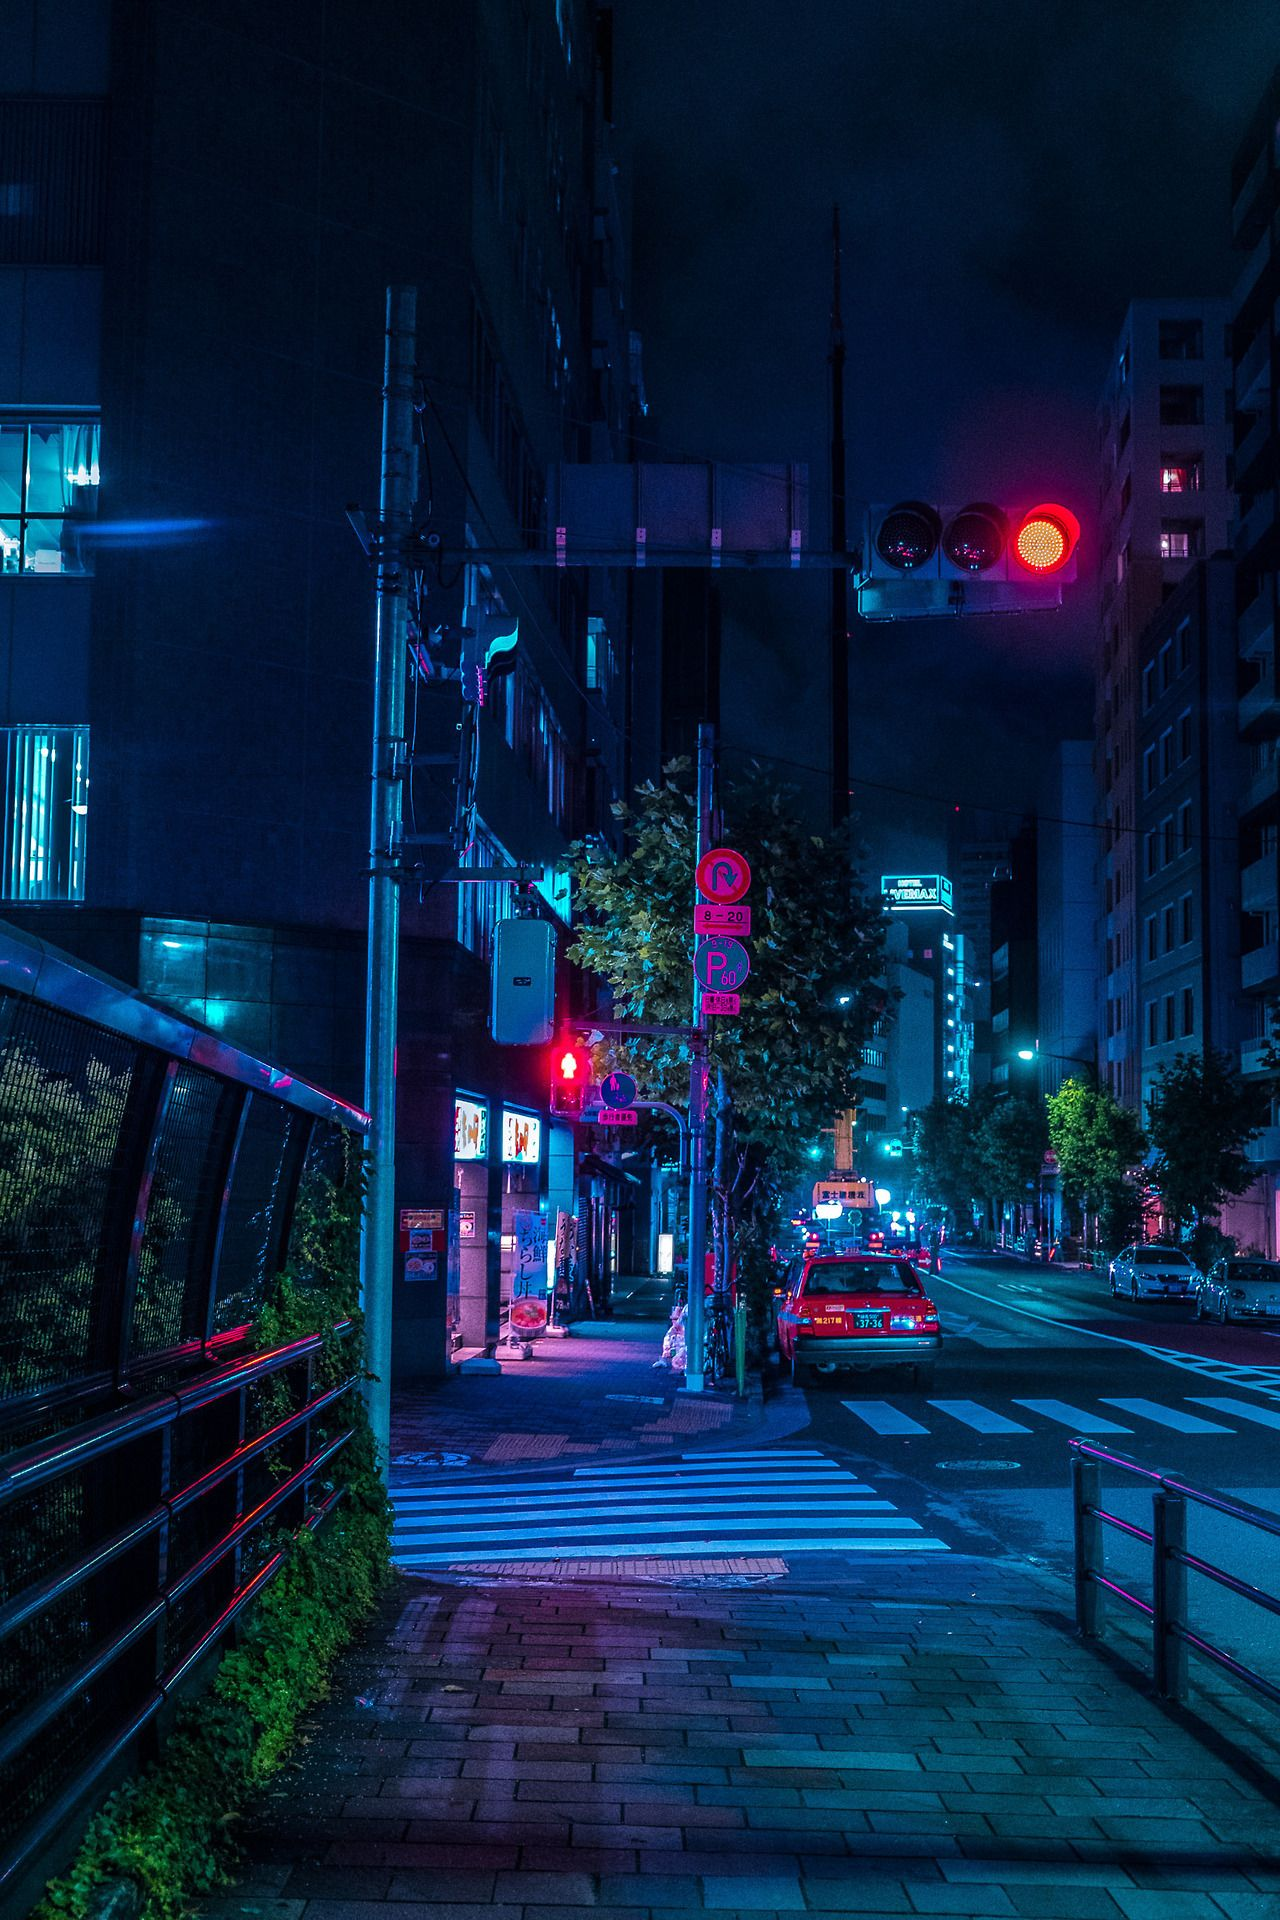 My Lifestyle Together Urban Landscape Night Photography City Aesthetic